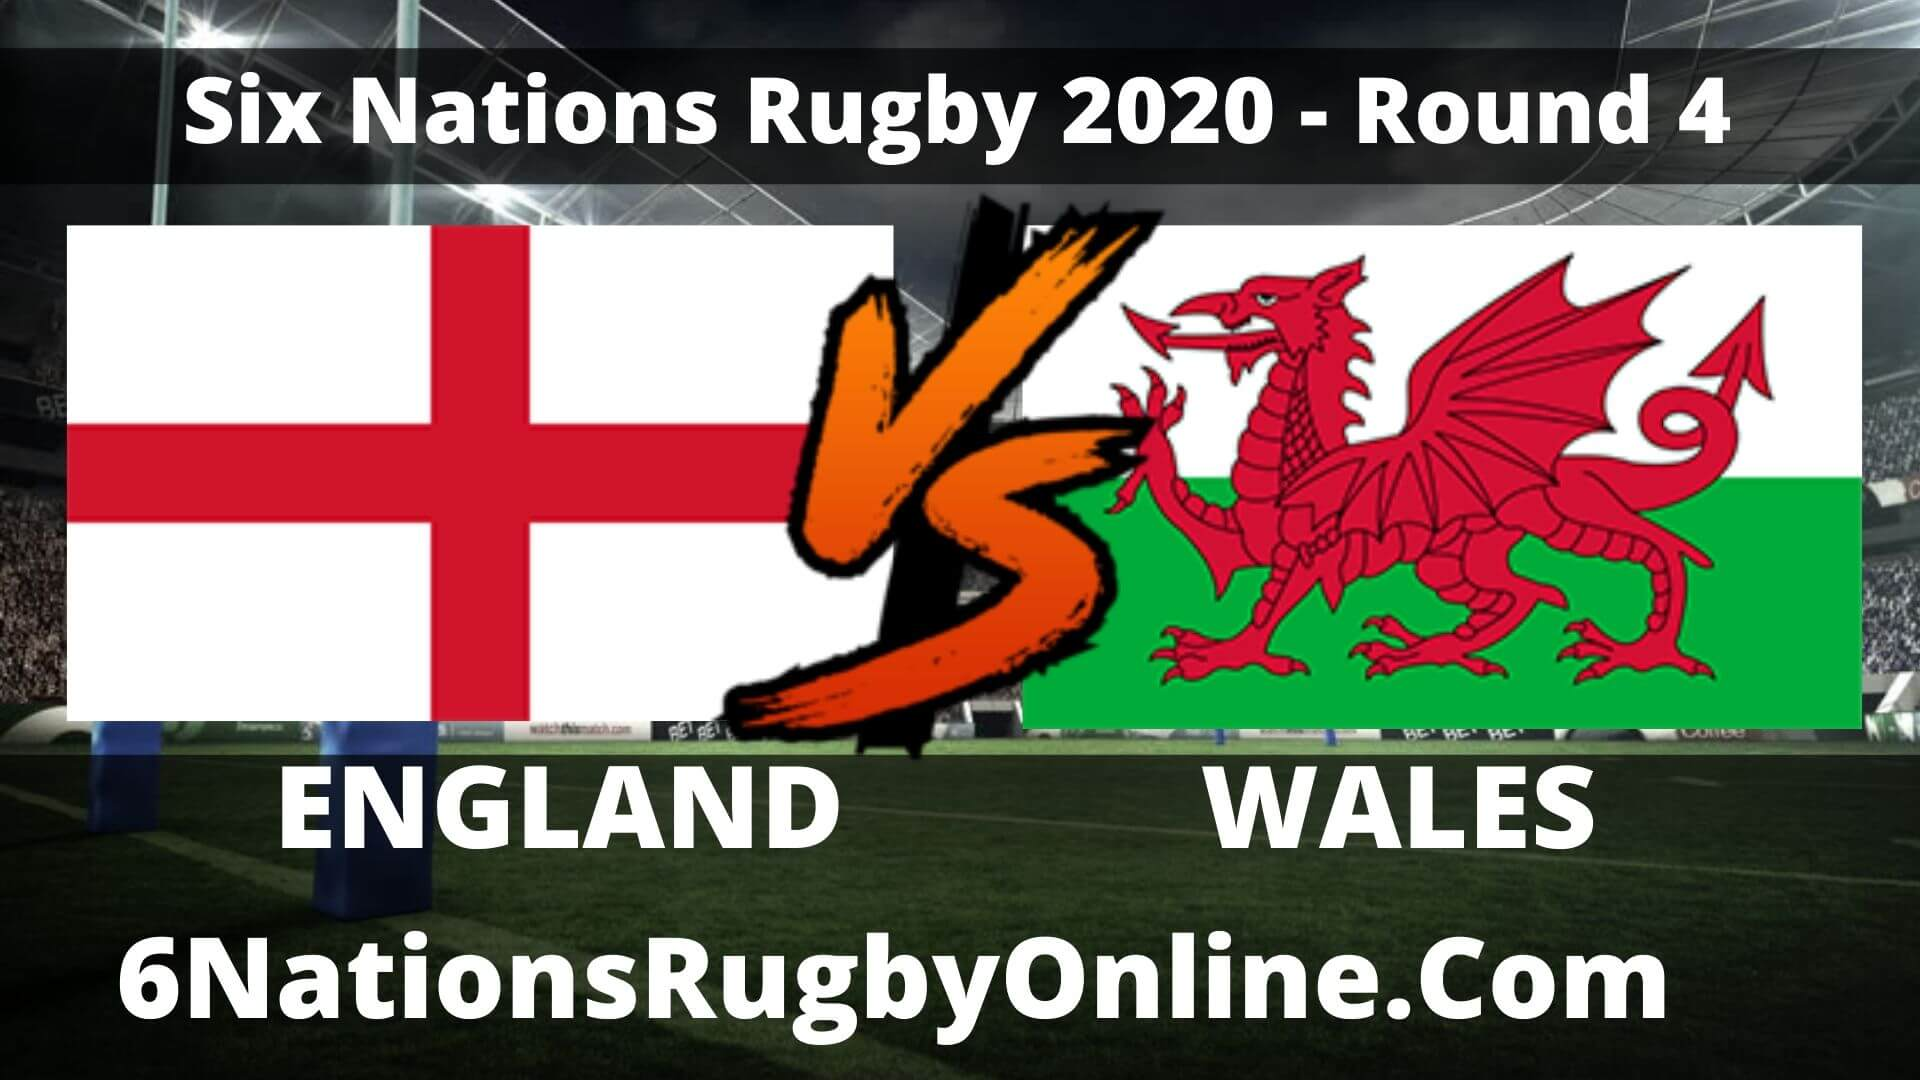 England vs Wales Live Stream 2020 Round 4 | Match Replay